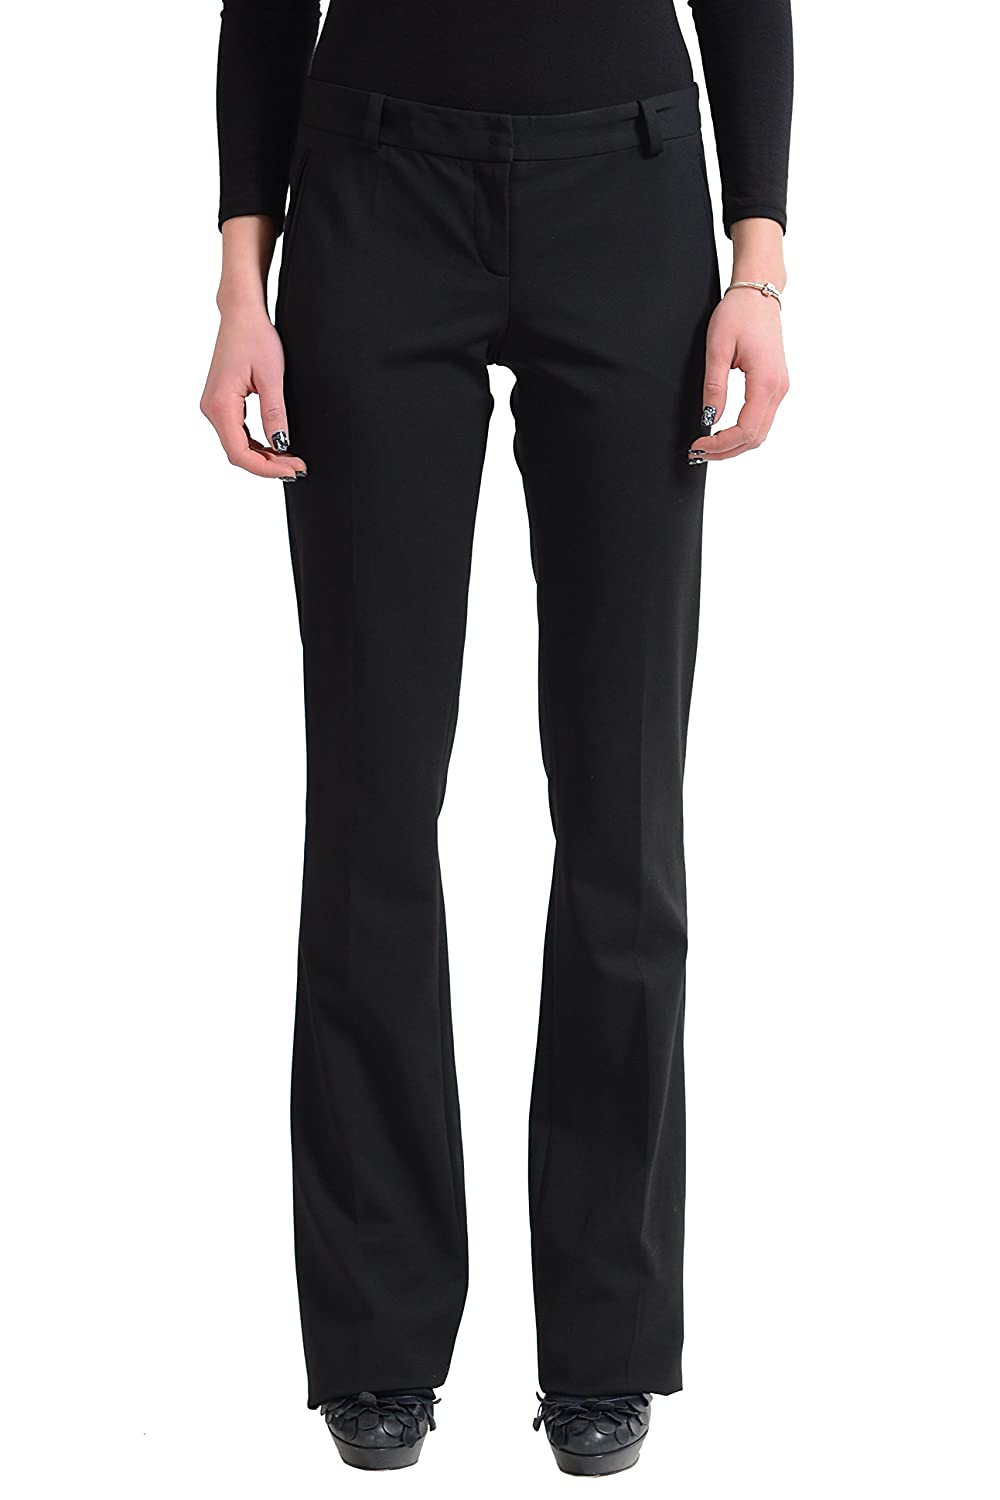 Versace Wool Black Flat Front Women's Casual Pants US 2 IT 38